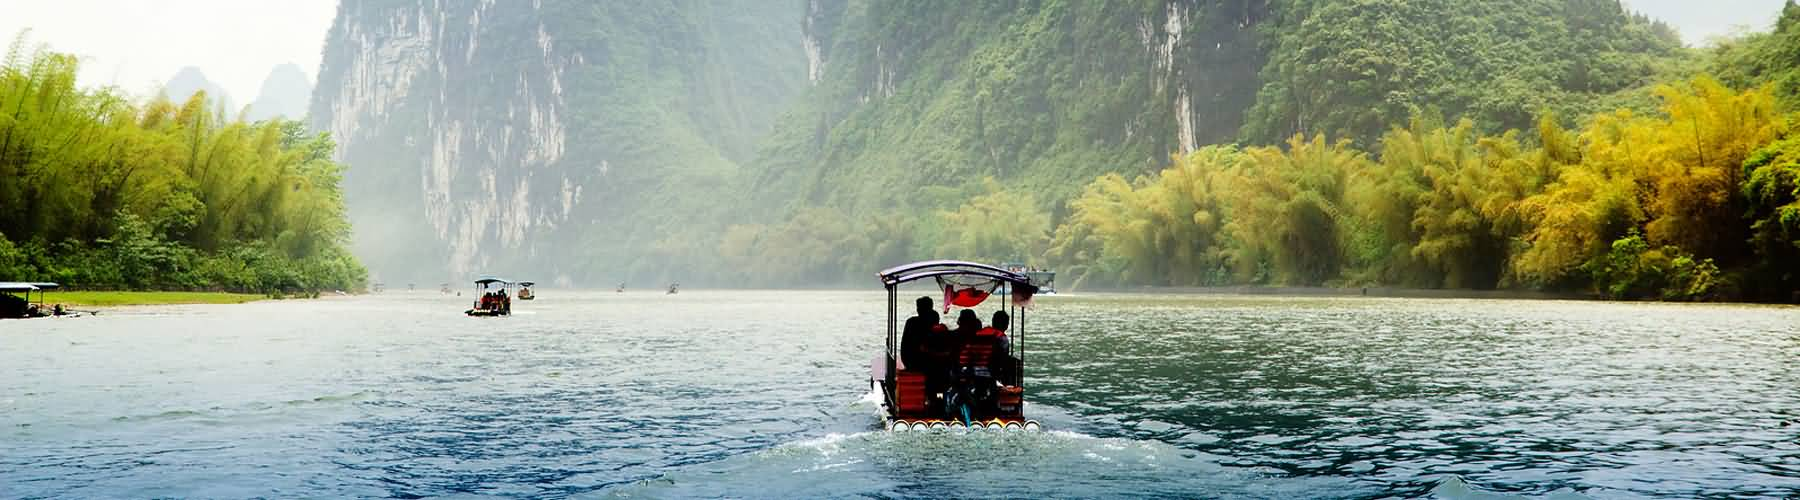 Bamboo Raft on Li River